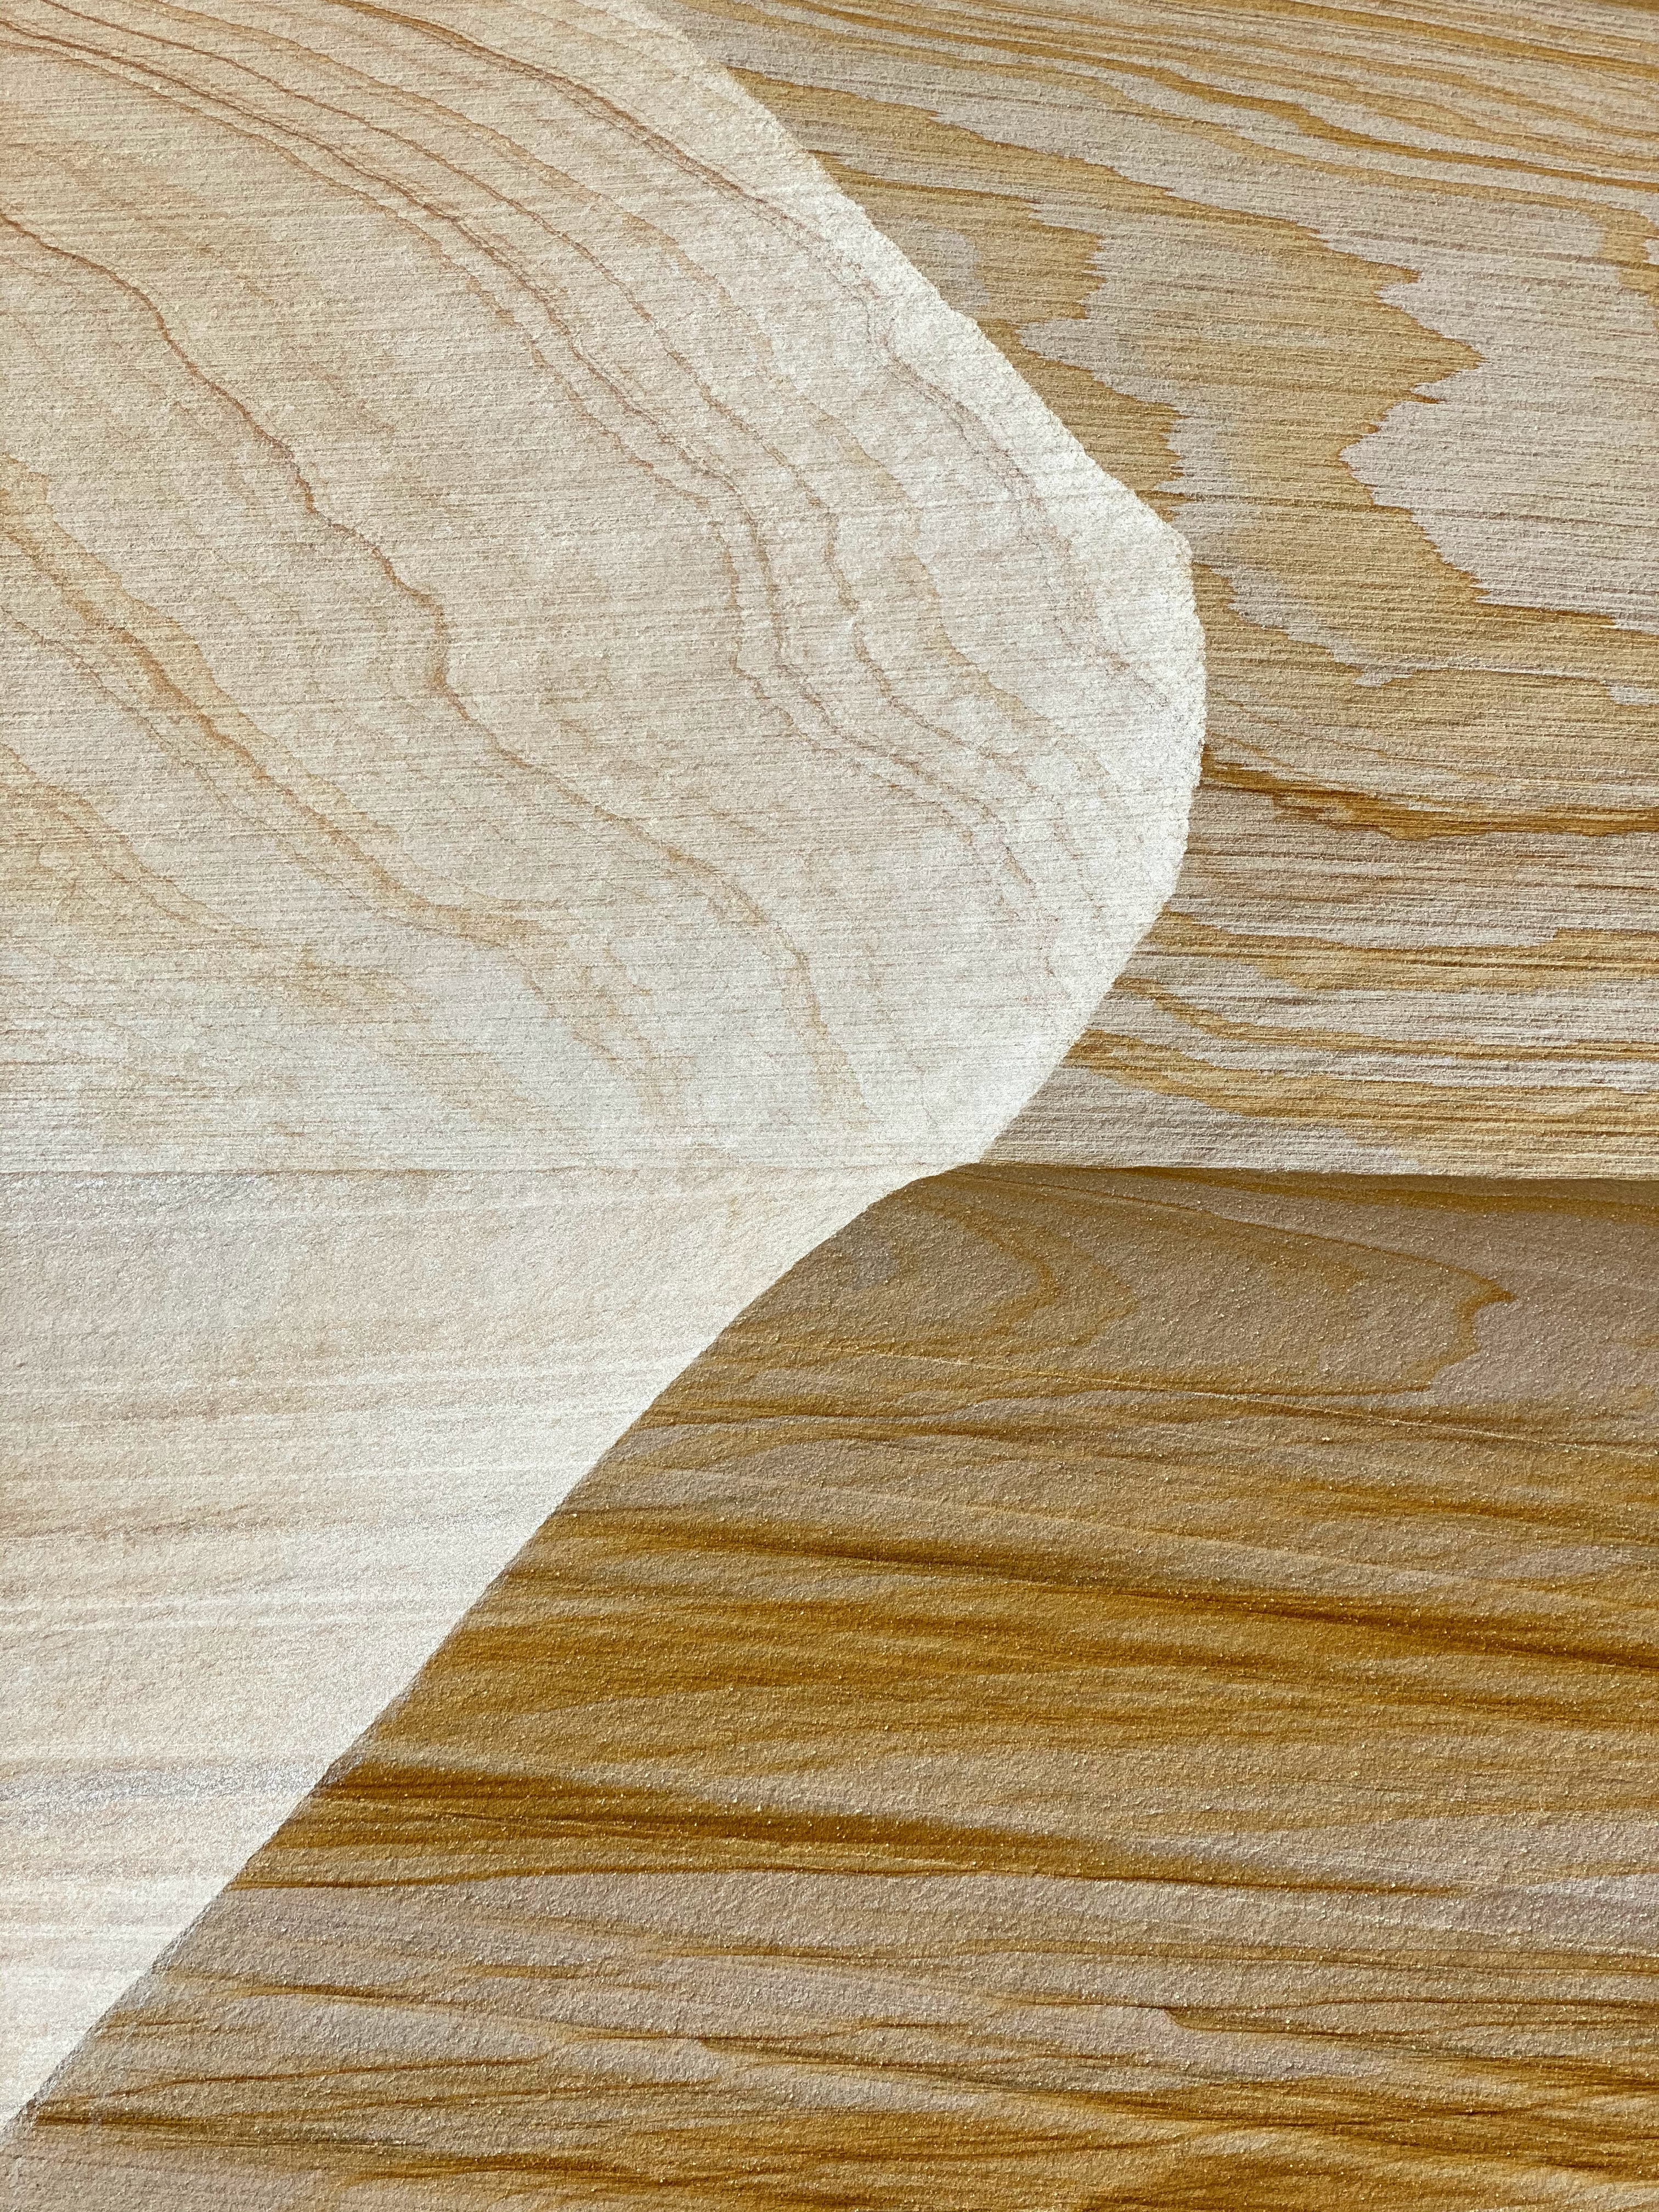 Manufacture of other wood treatment articles, inc chips, particles, wood wool etc in Põlva county